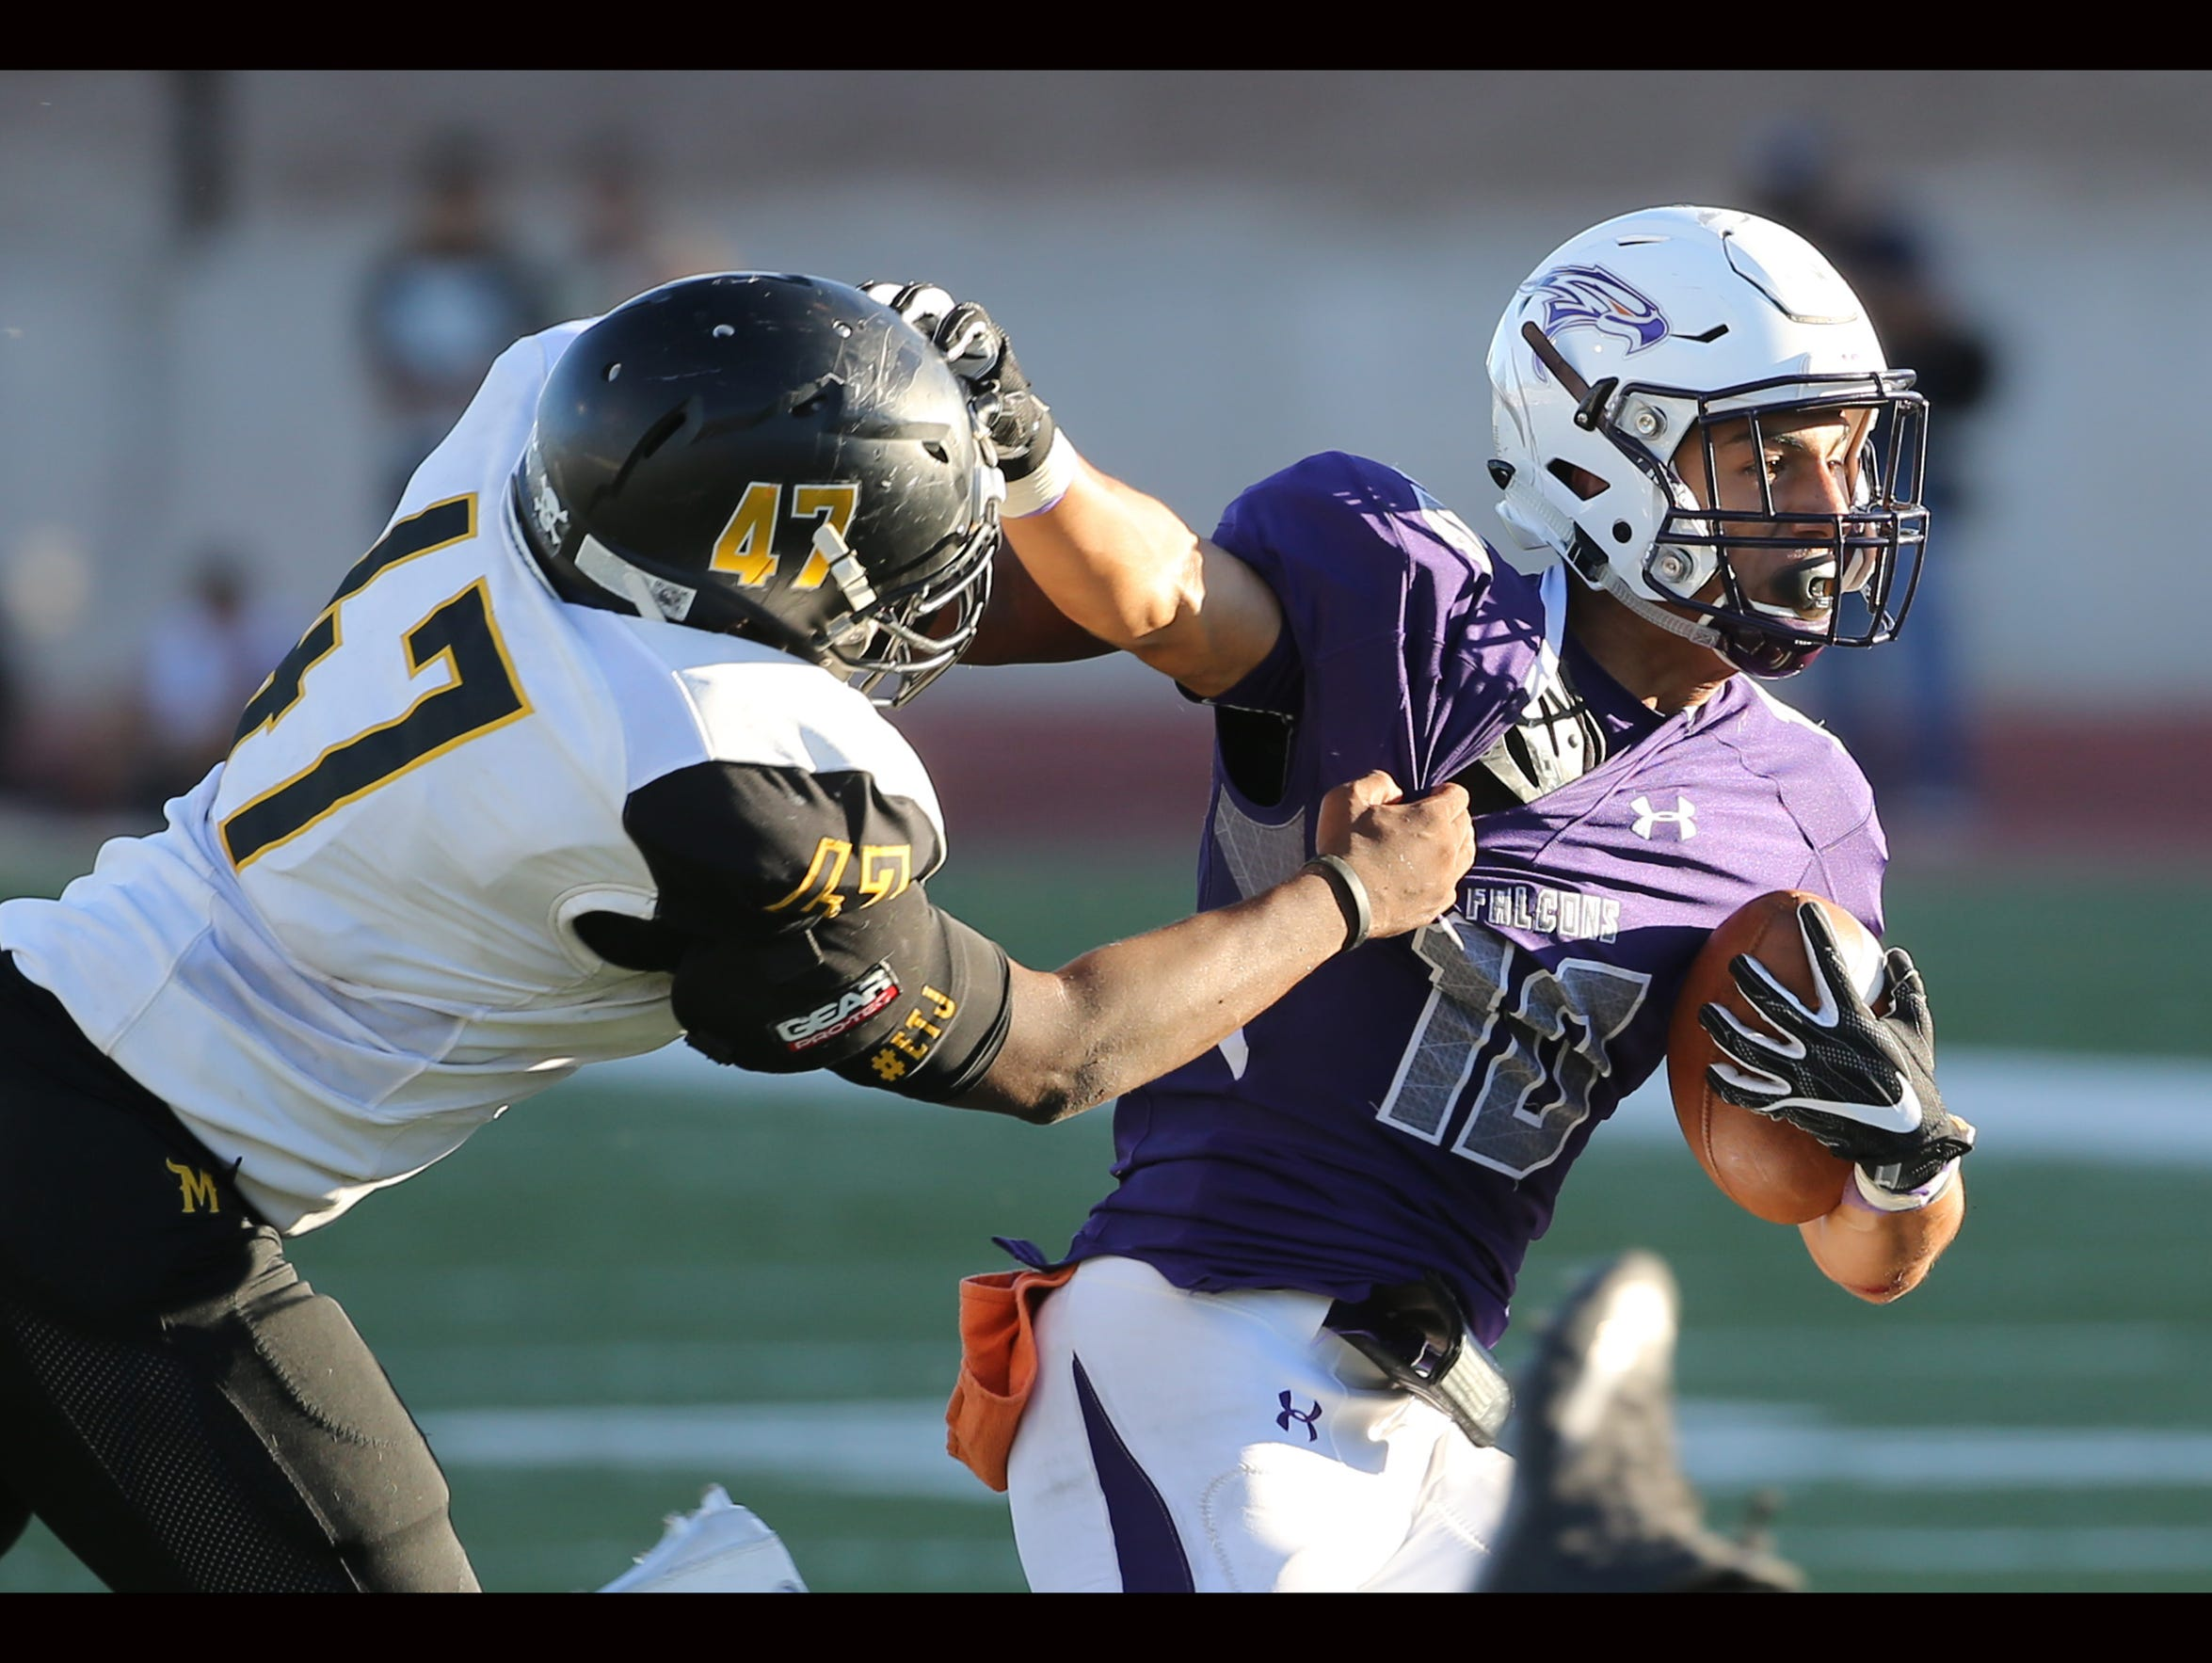 Eastlake's Isaiah Granados, right, fends off Parkland's